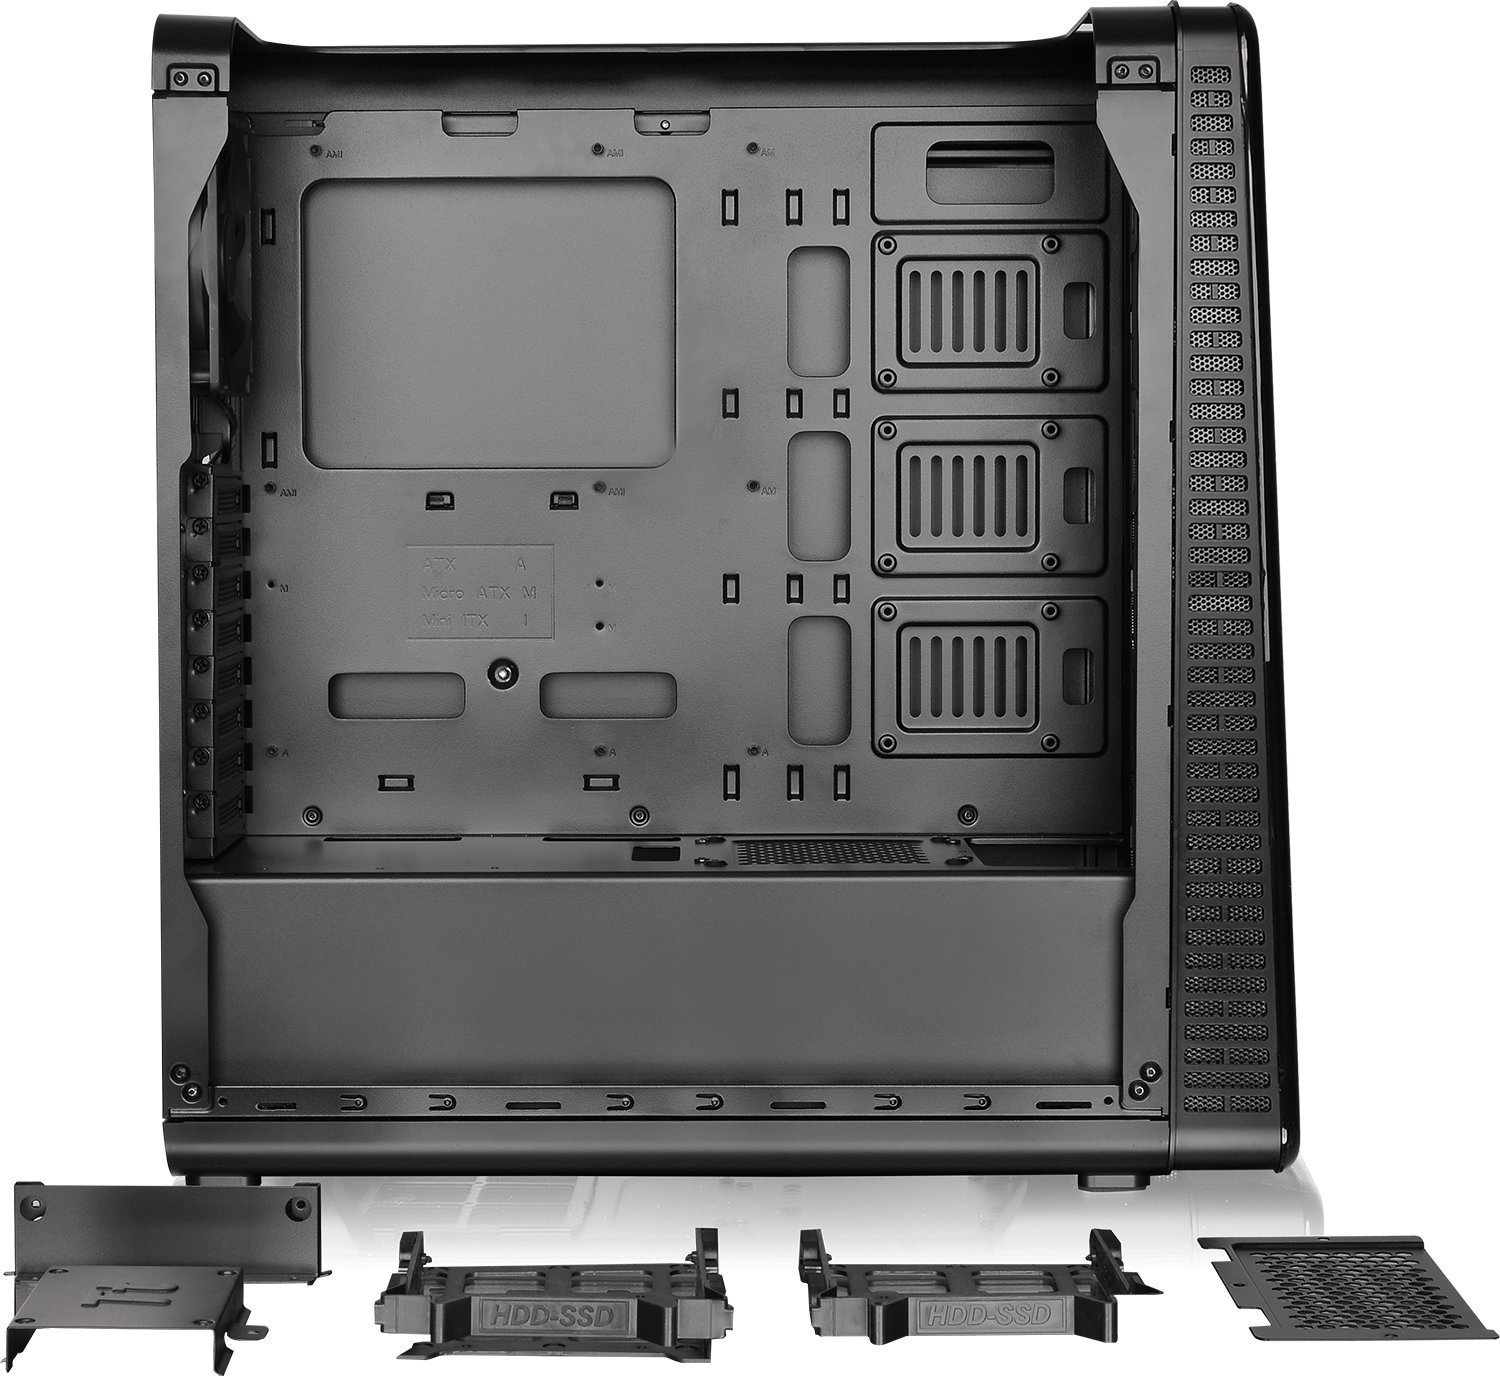 Thermaltake: View 28 RGB Gull-Wing Window ATX Mid-Tower Chassis image